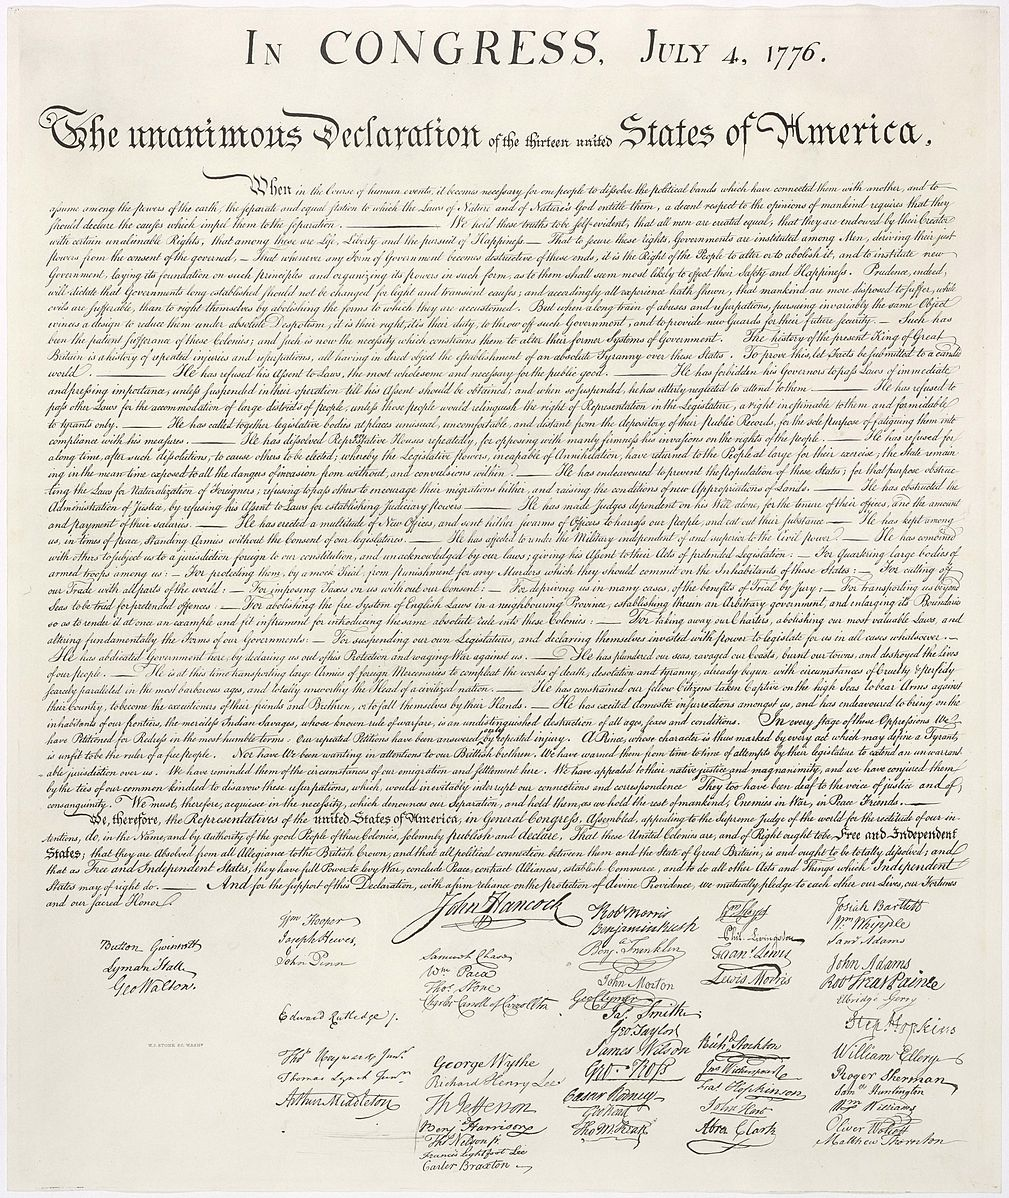 an analysis of equality in america through the declaration of independence the declaration of sentim Chairman: the inclusion in the constitution of declaration of fundamental rights safeguarding the cultural and religious life of the various communities and securing to every individual, without distinction of race, and so on,  the free exercise, and so on.